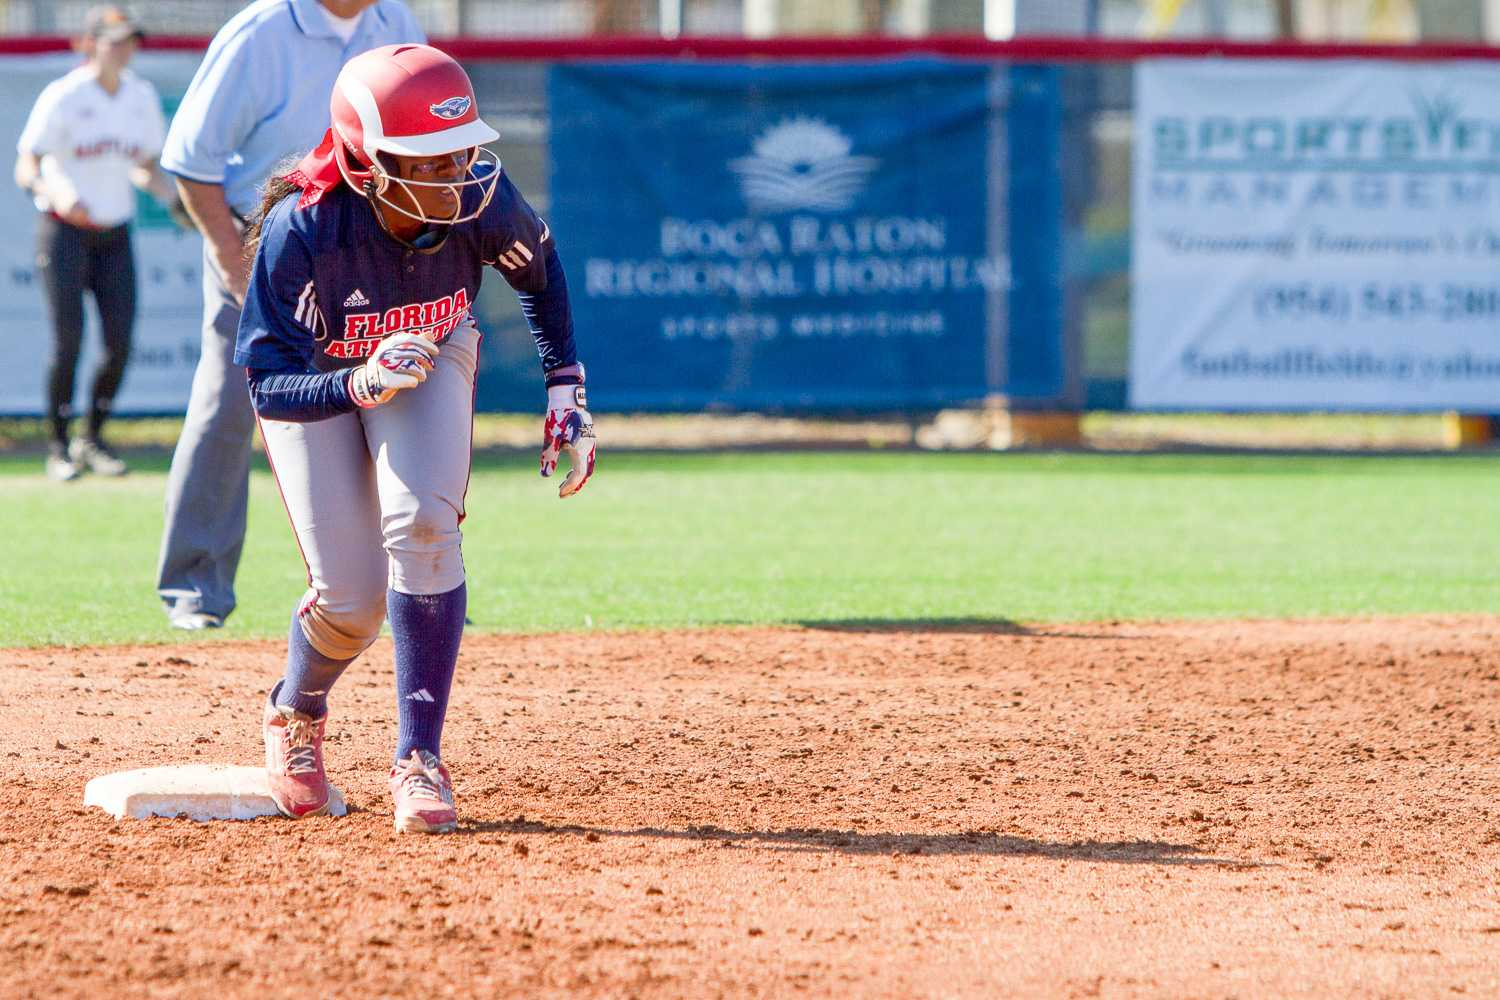 Junior infielder Carnesha Thompson prepares to lead off second base. Thompson went 2 for 4 and scored one of the Owls' six runs.